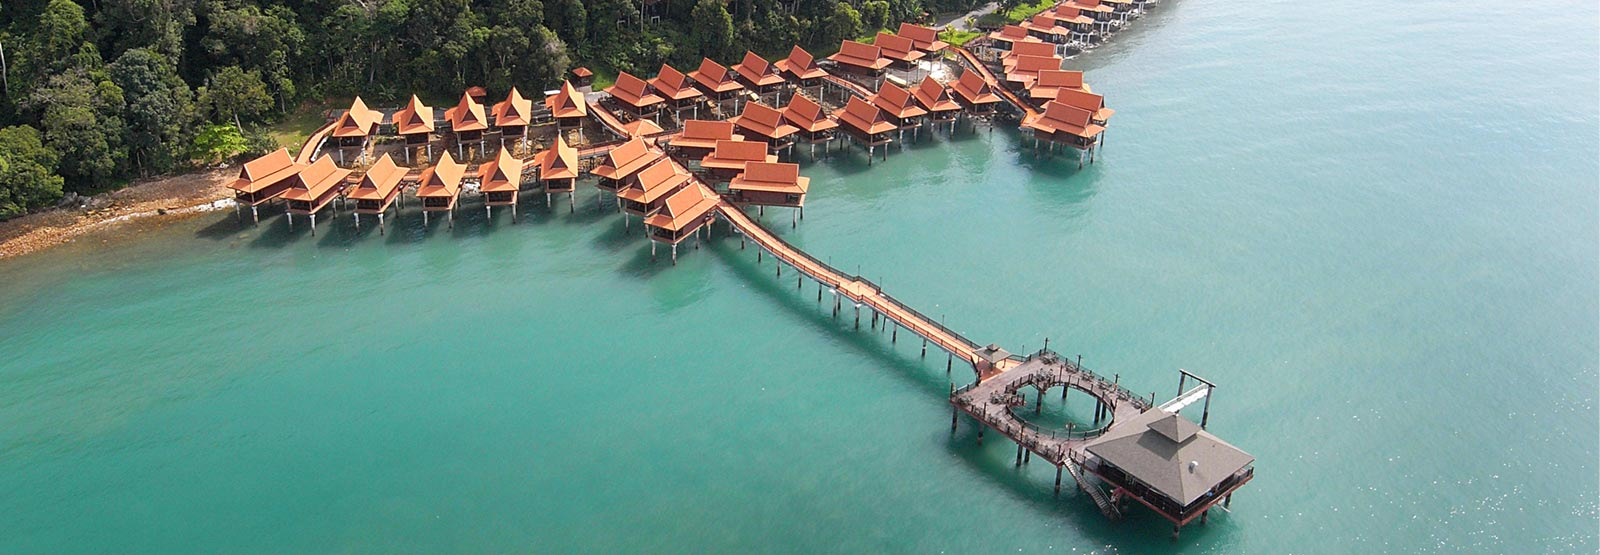 best hotel in langkawi with private pool, langkawi hotel near beach, langkawi resort, langkawi hotel 5-star,langkawi resort, top 10 langkawi hotel,